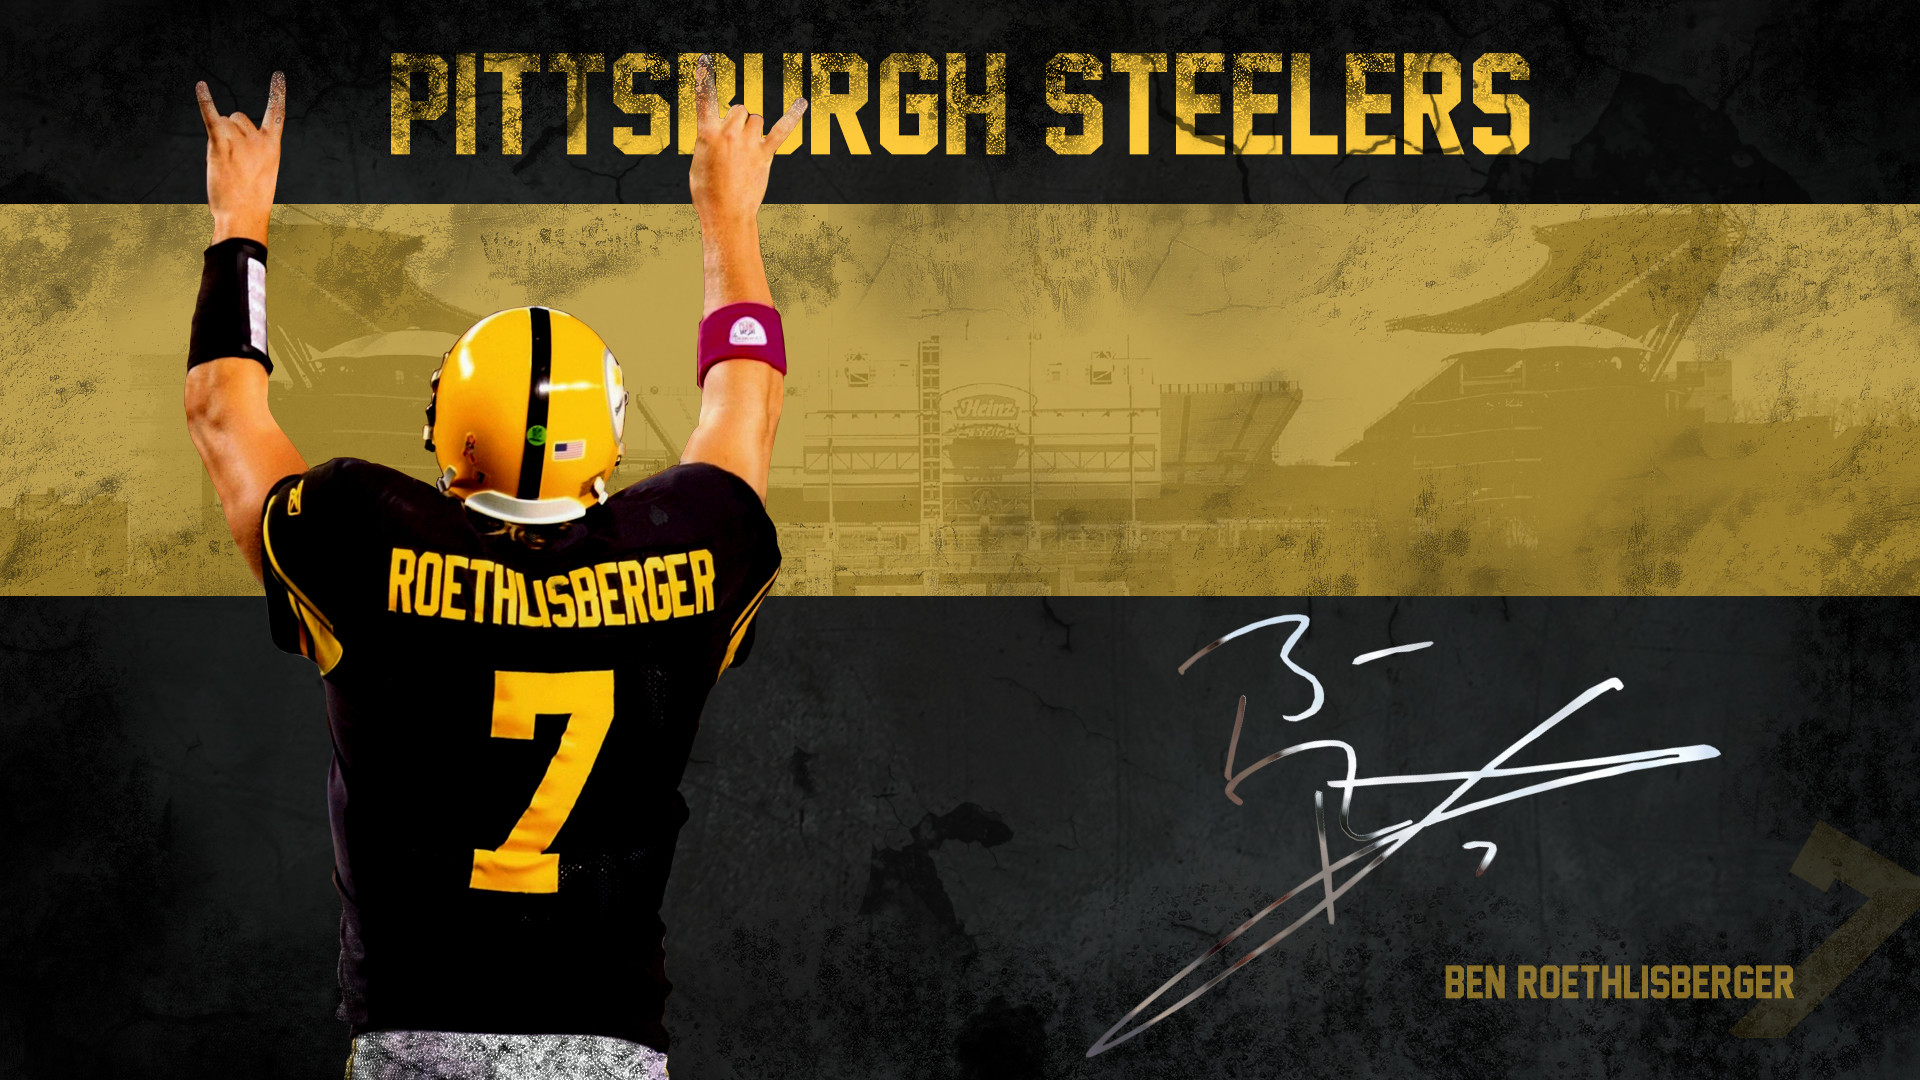 Res: 1920x1080, Pittsburgh Steelers Wallpaper 16 - 1920 X 1080